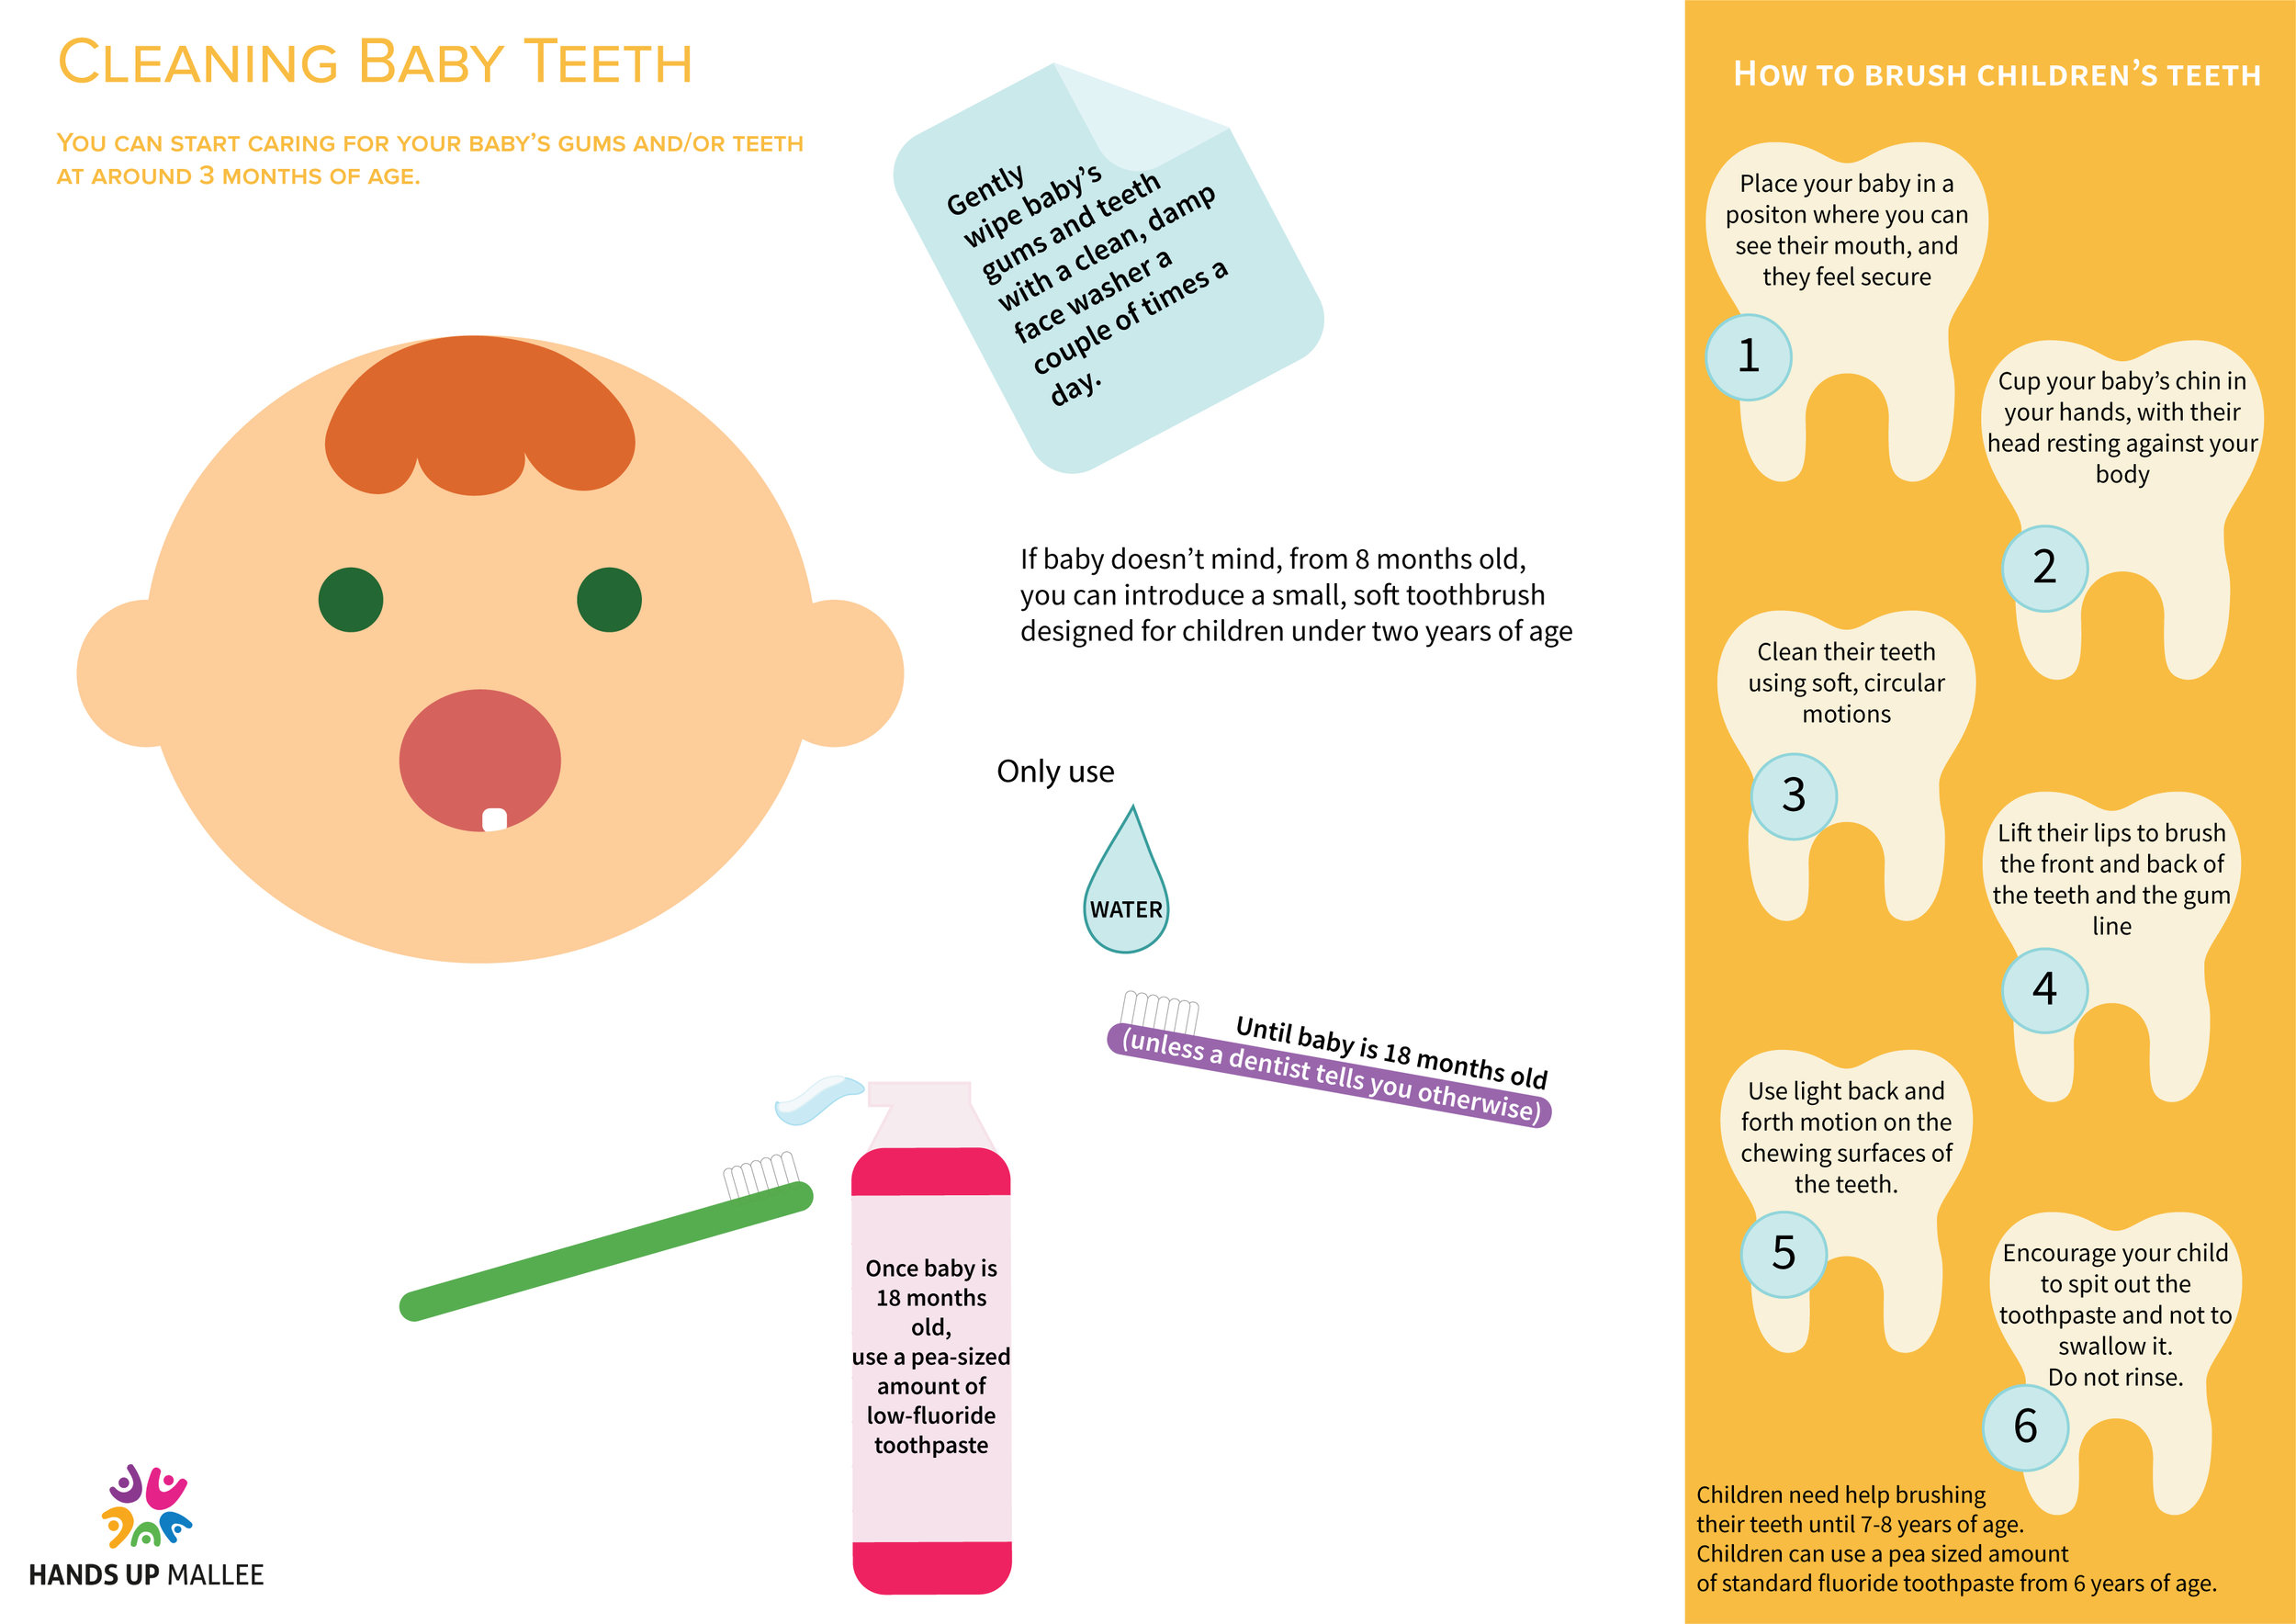 Cleaning Baby Teeth - Cleaning baby teeth is an essential step in keeping them healthy. Baby teeth health is important for:Eating, biting, chewing and grinding foods when baby starts to eat. Normal speech development. Making space for permanent teeth and guiding them into place. Developing jaw and mouth muscles. Self esteem. Learning.